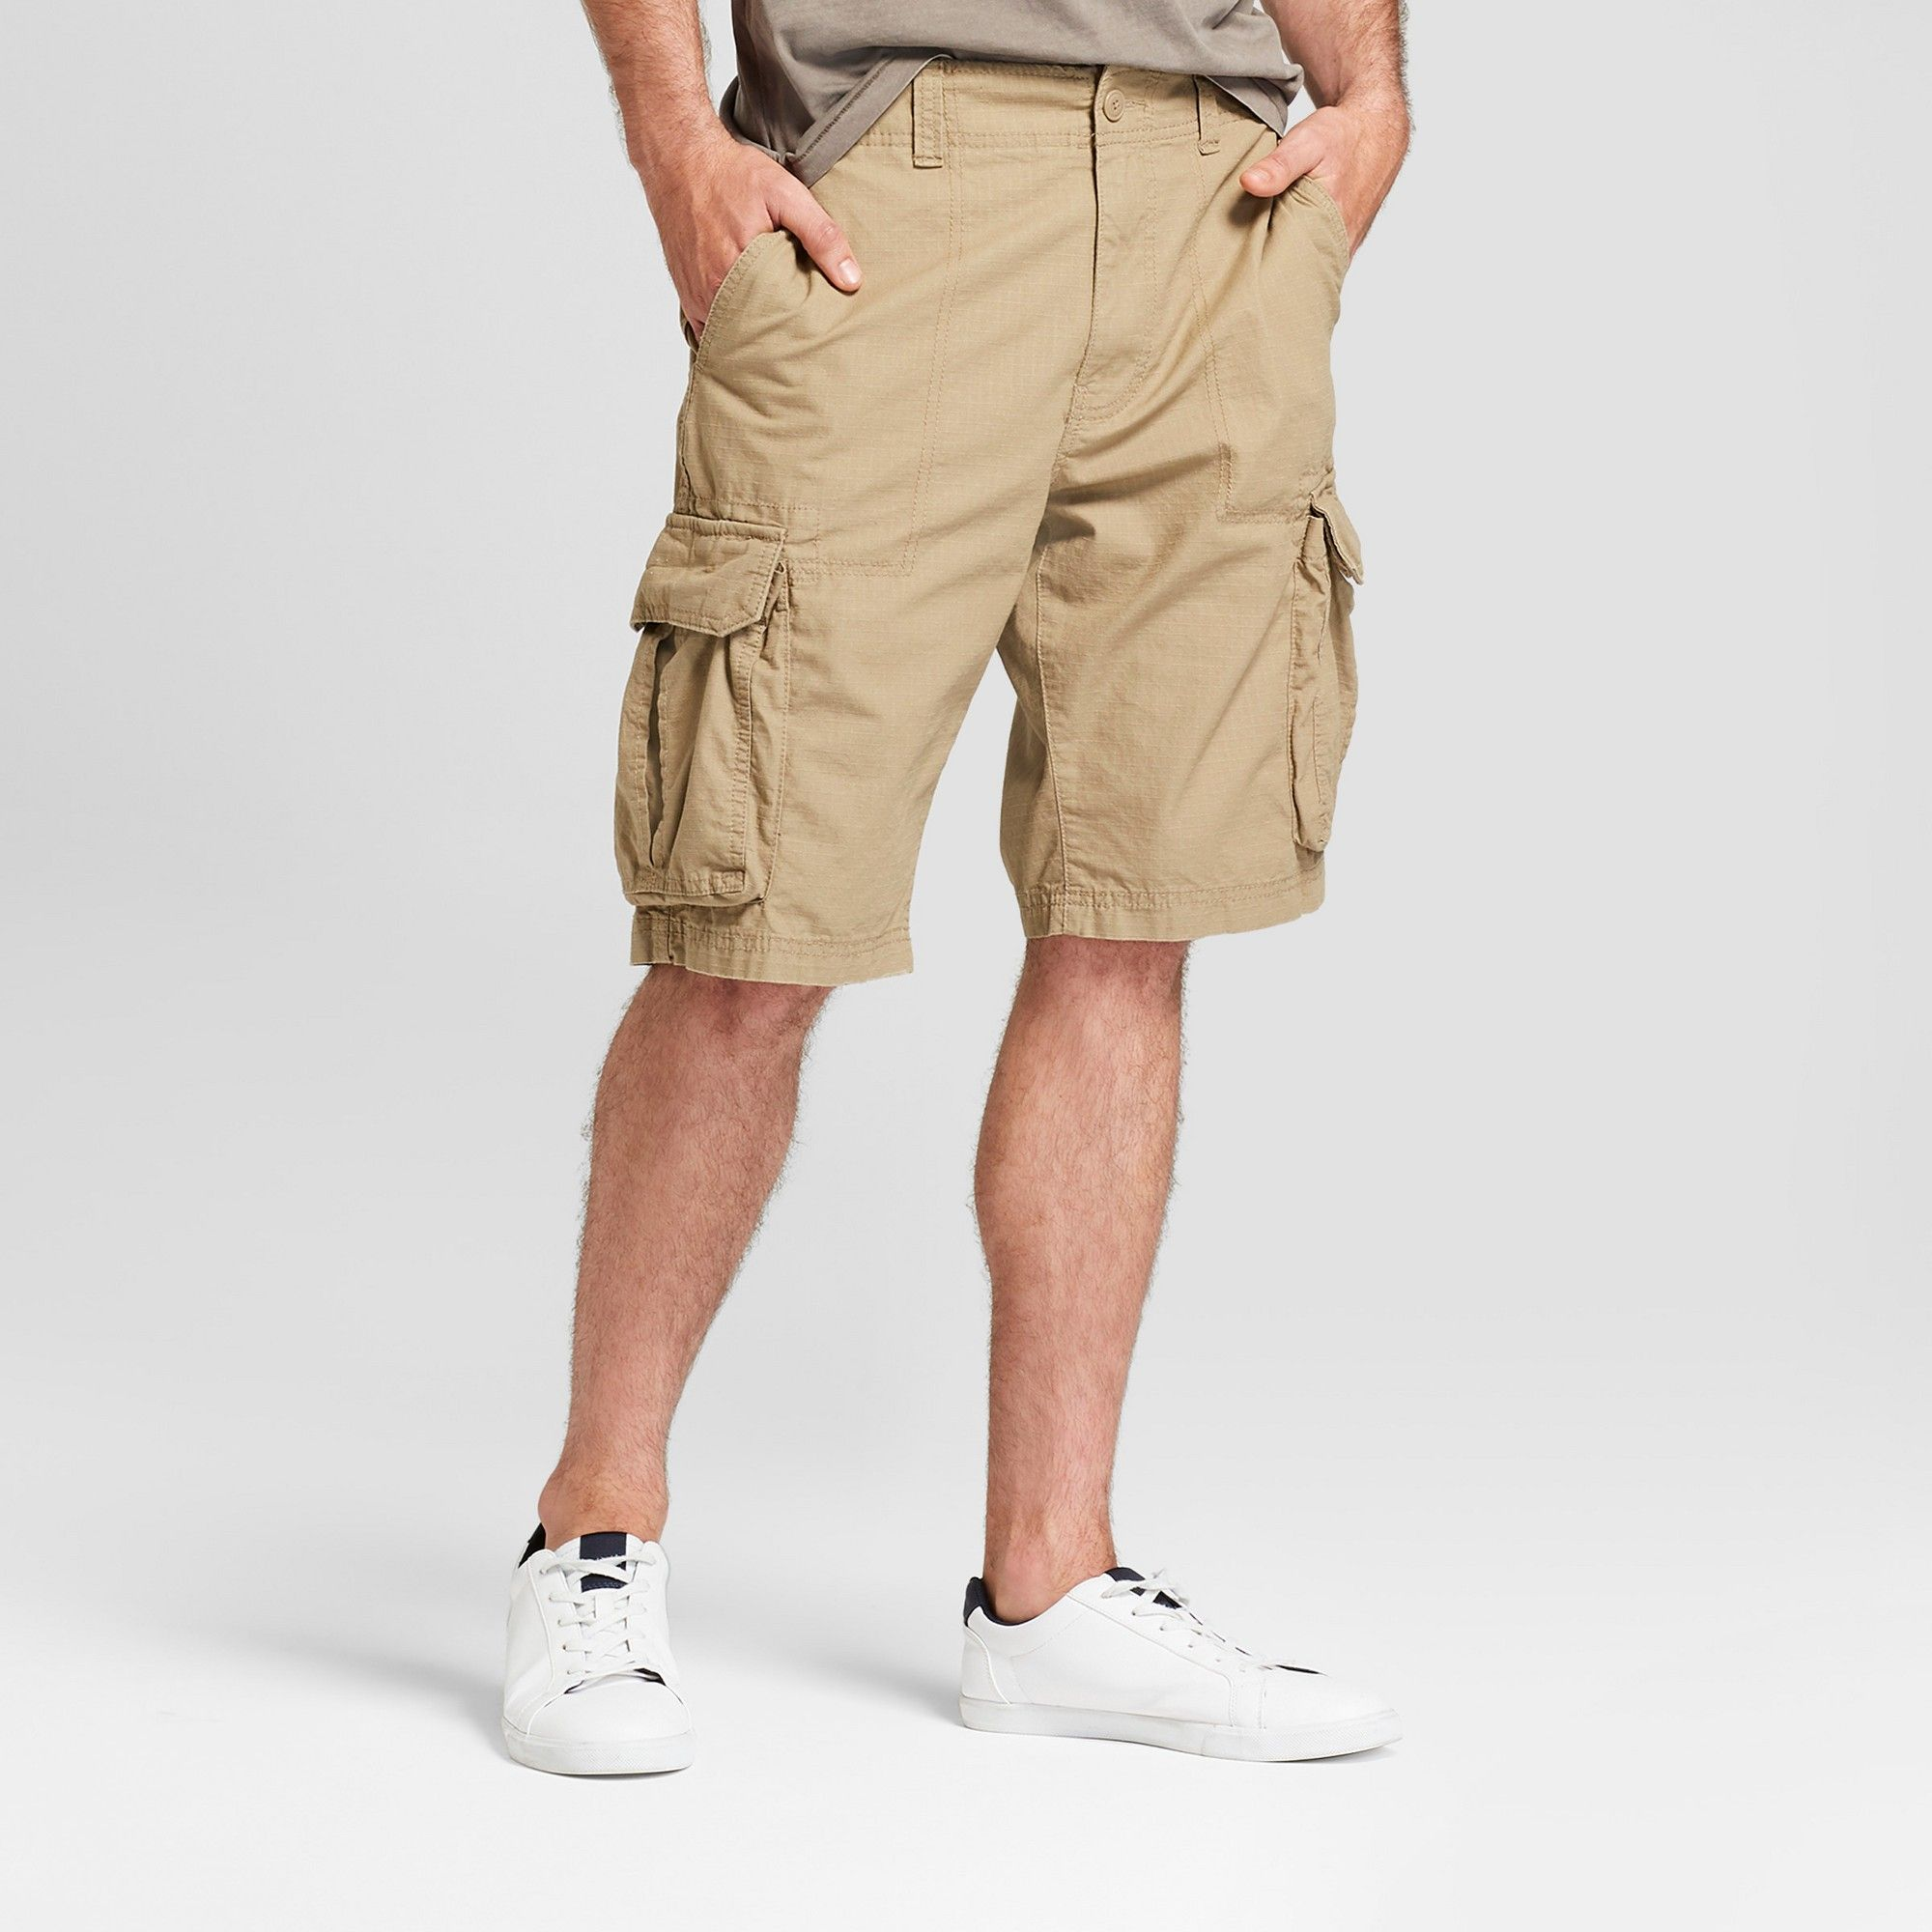 1ed451b8bd Men's 11 Ripstop Cargo Shorts - Goodfellow & Co Sculptural Tan 32 ...